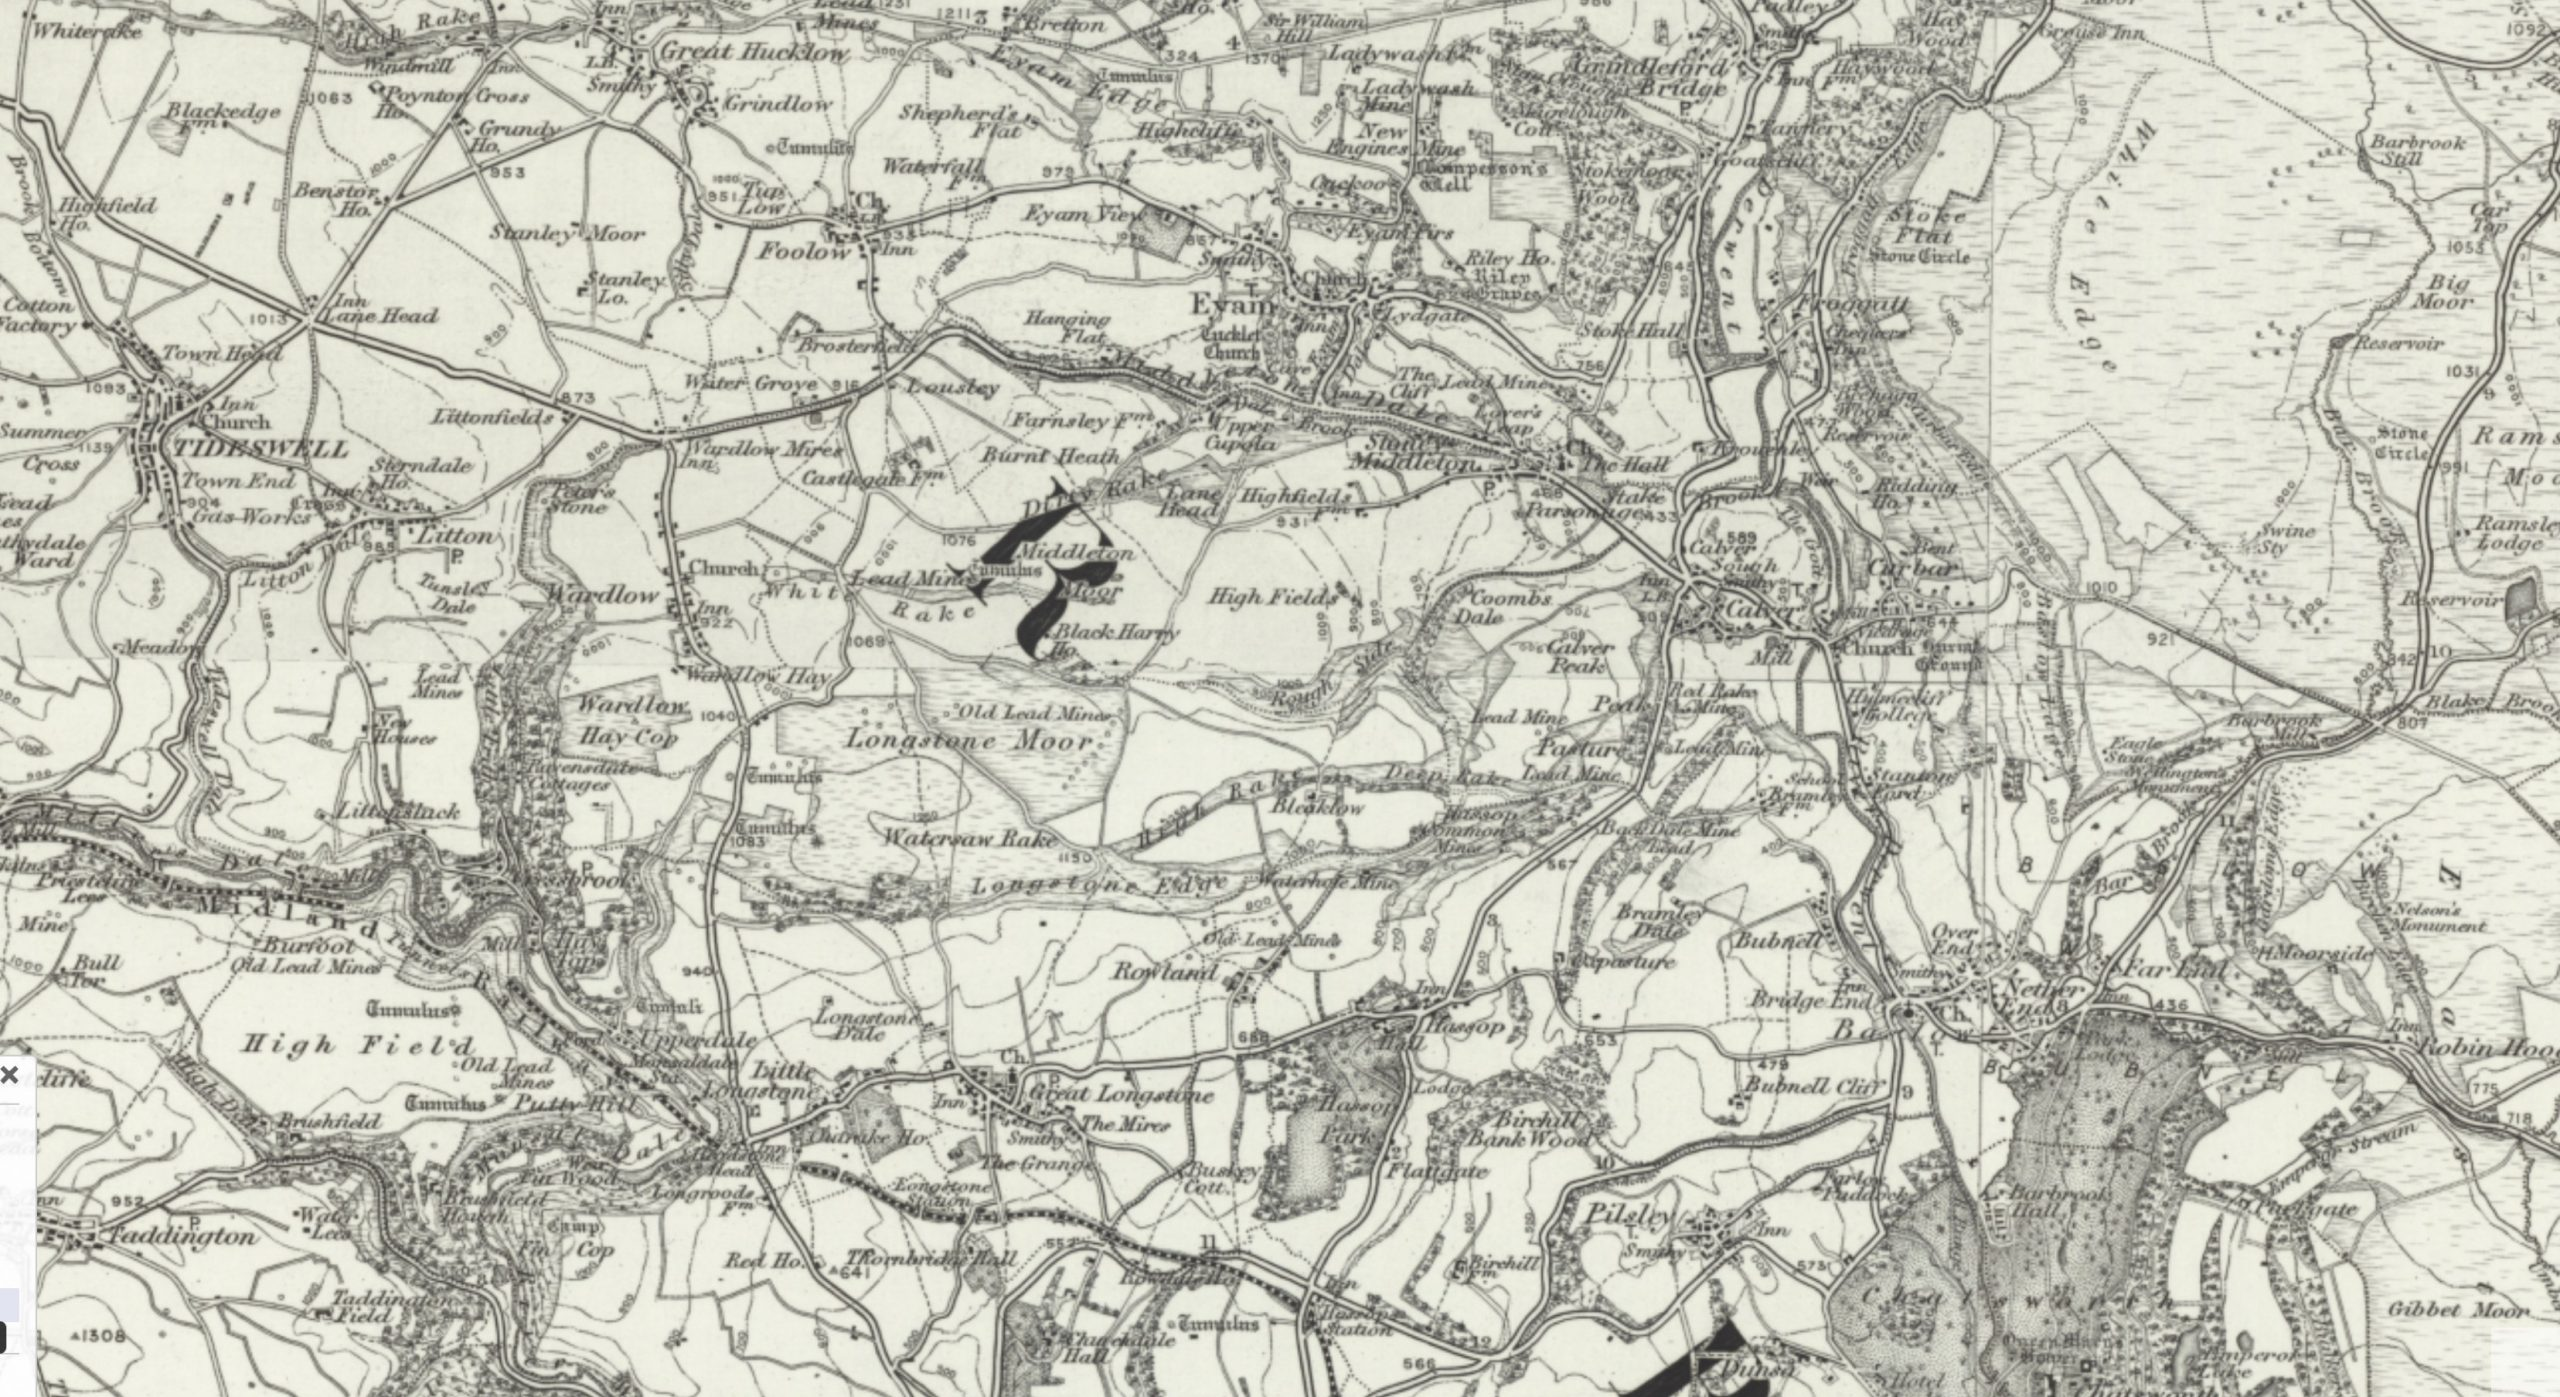 Map of Peak District in 19th century